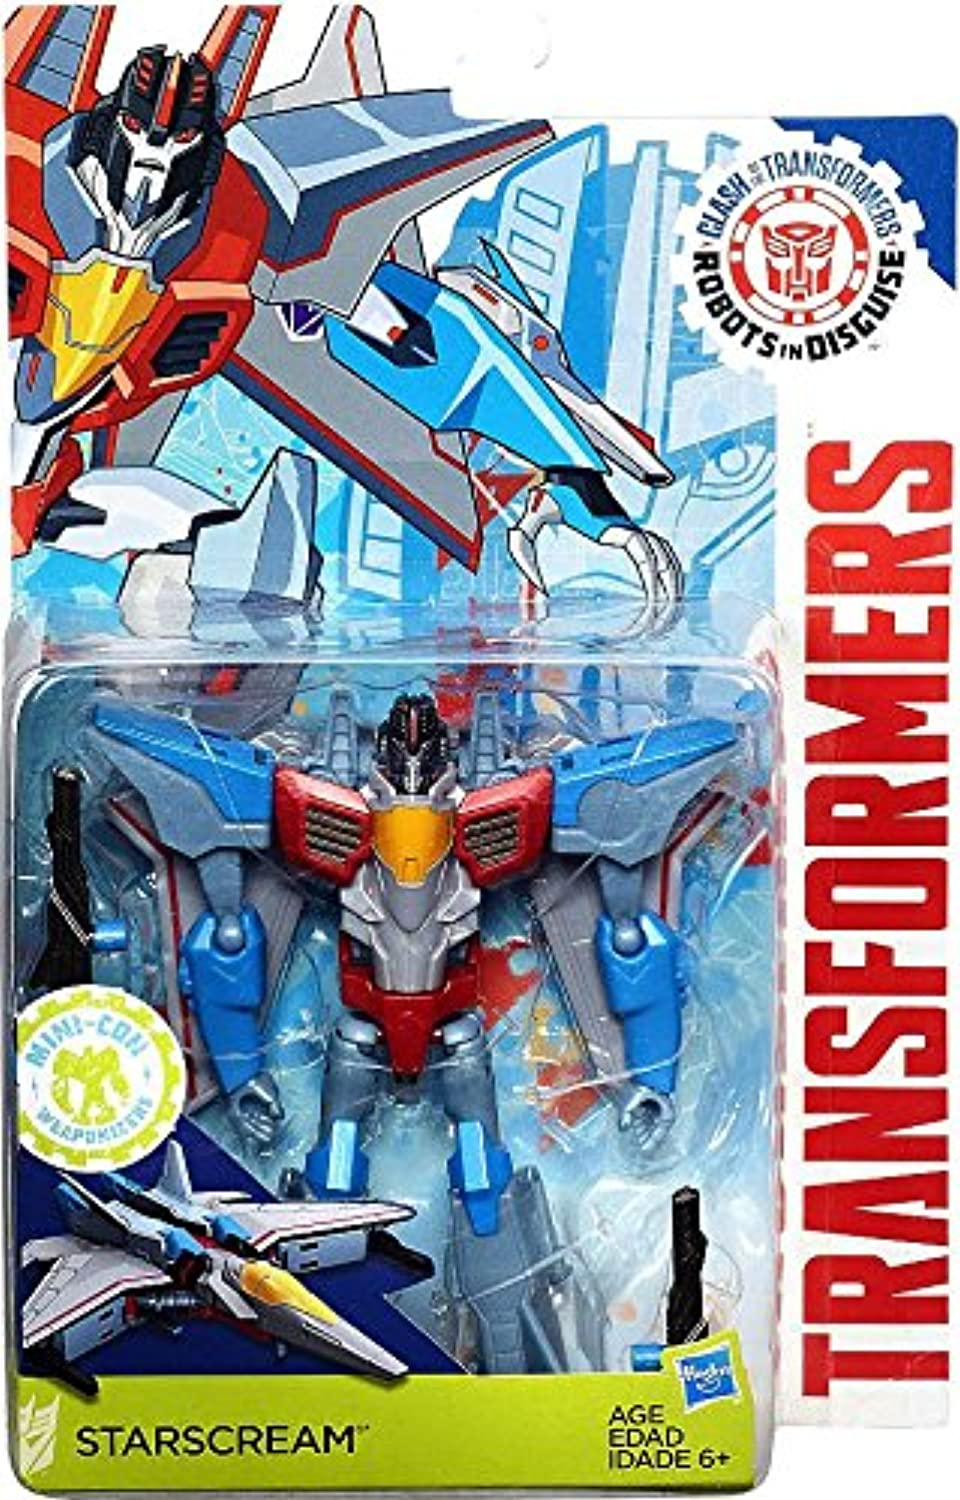 Transformers  Robots in Disguise Clash of the Transformers estrellascream Exclusive cifra by Transformers